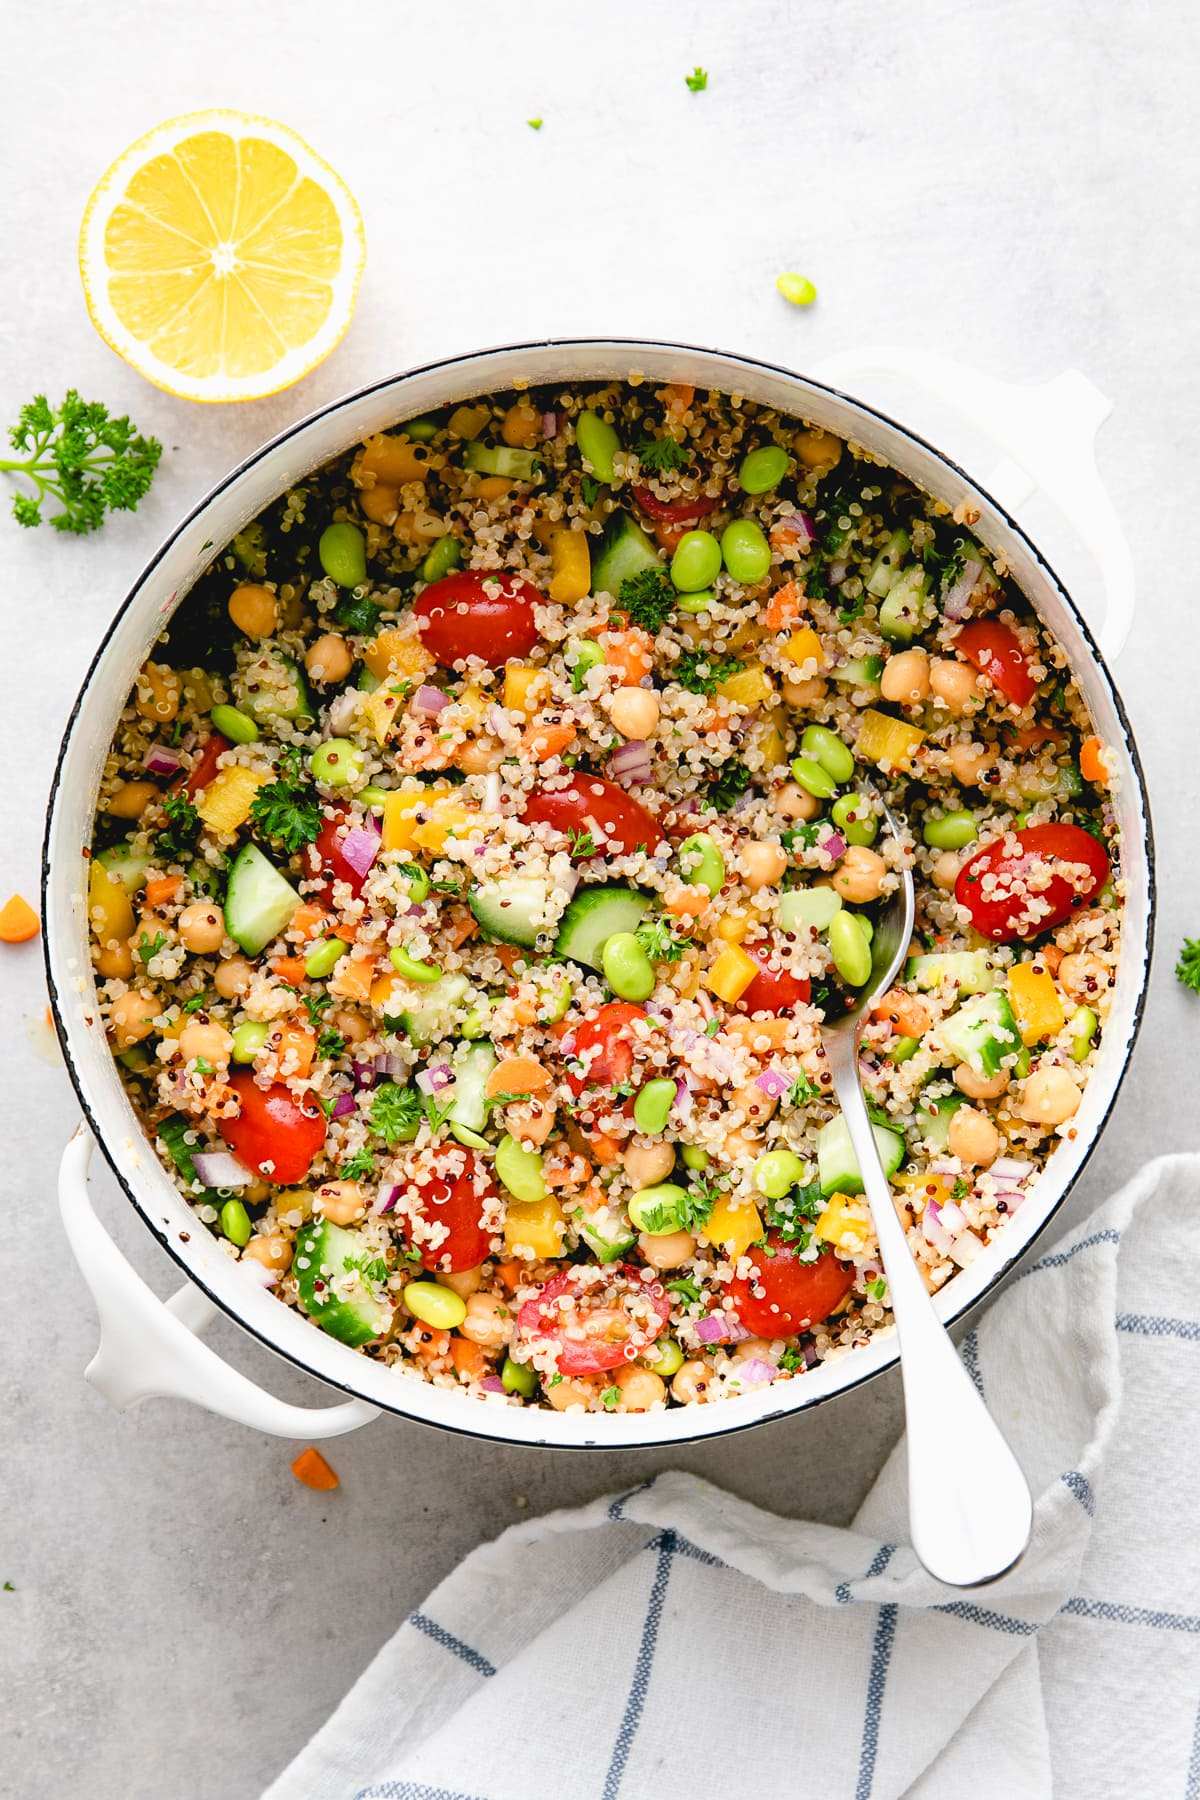 top down view of freshly made vegan quinoa salad in a pot with items surrounding.